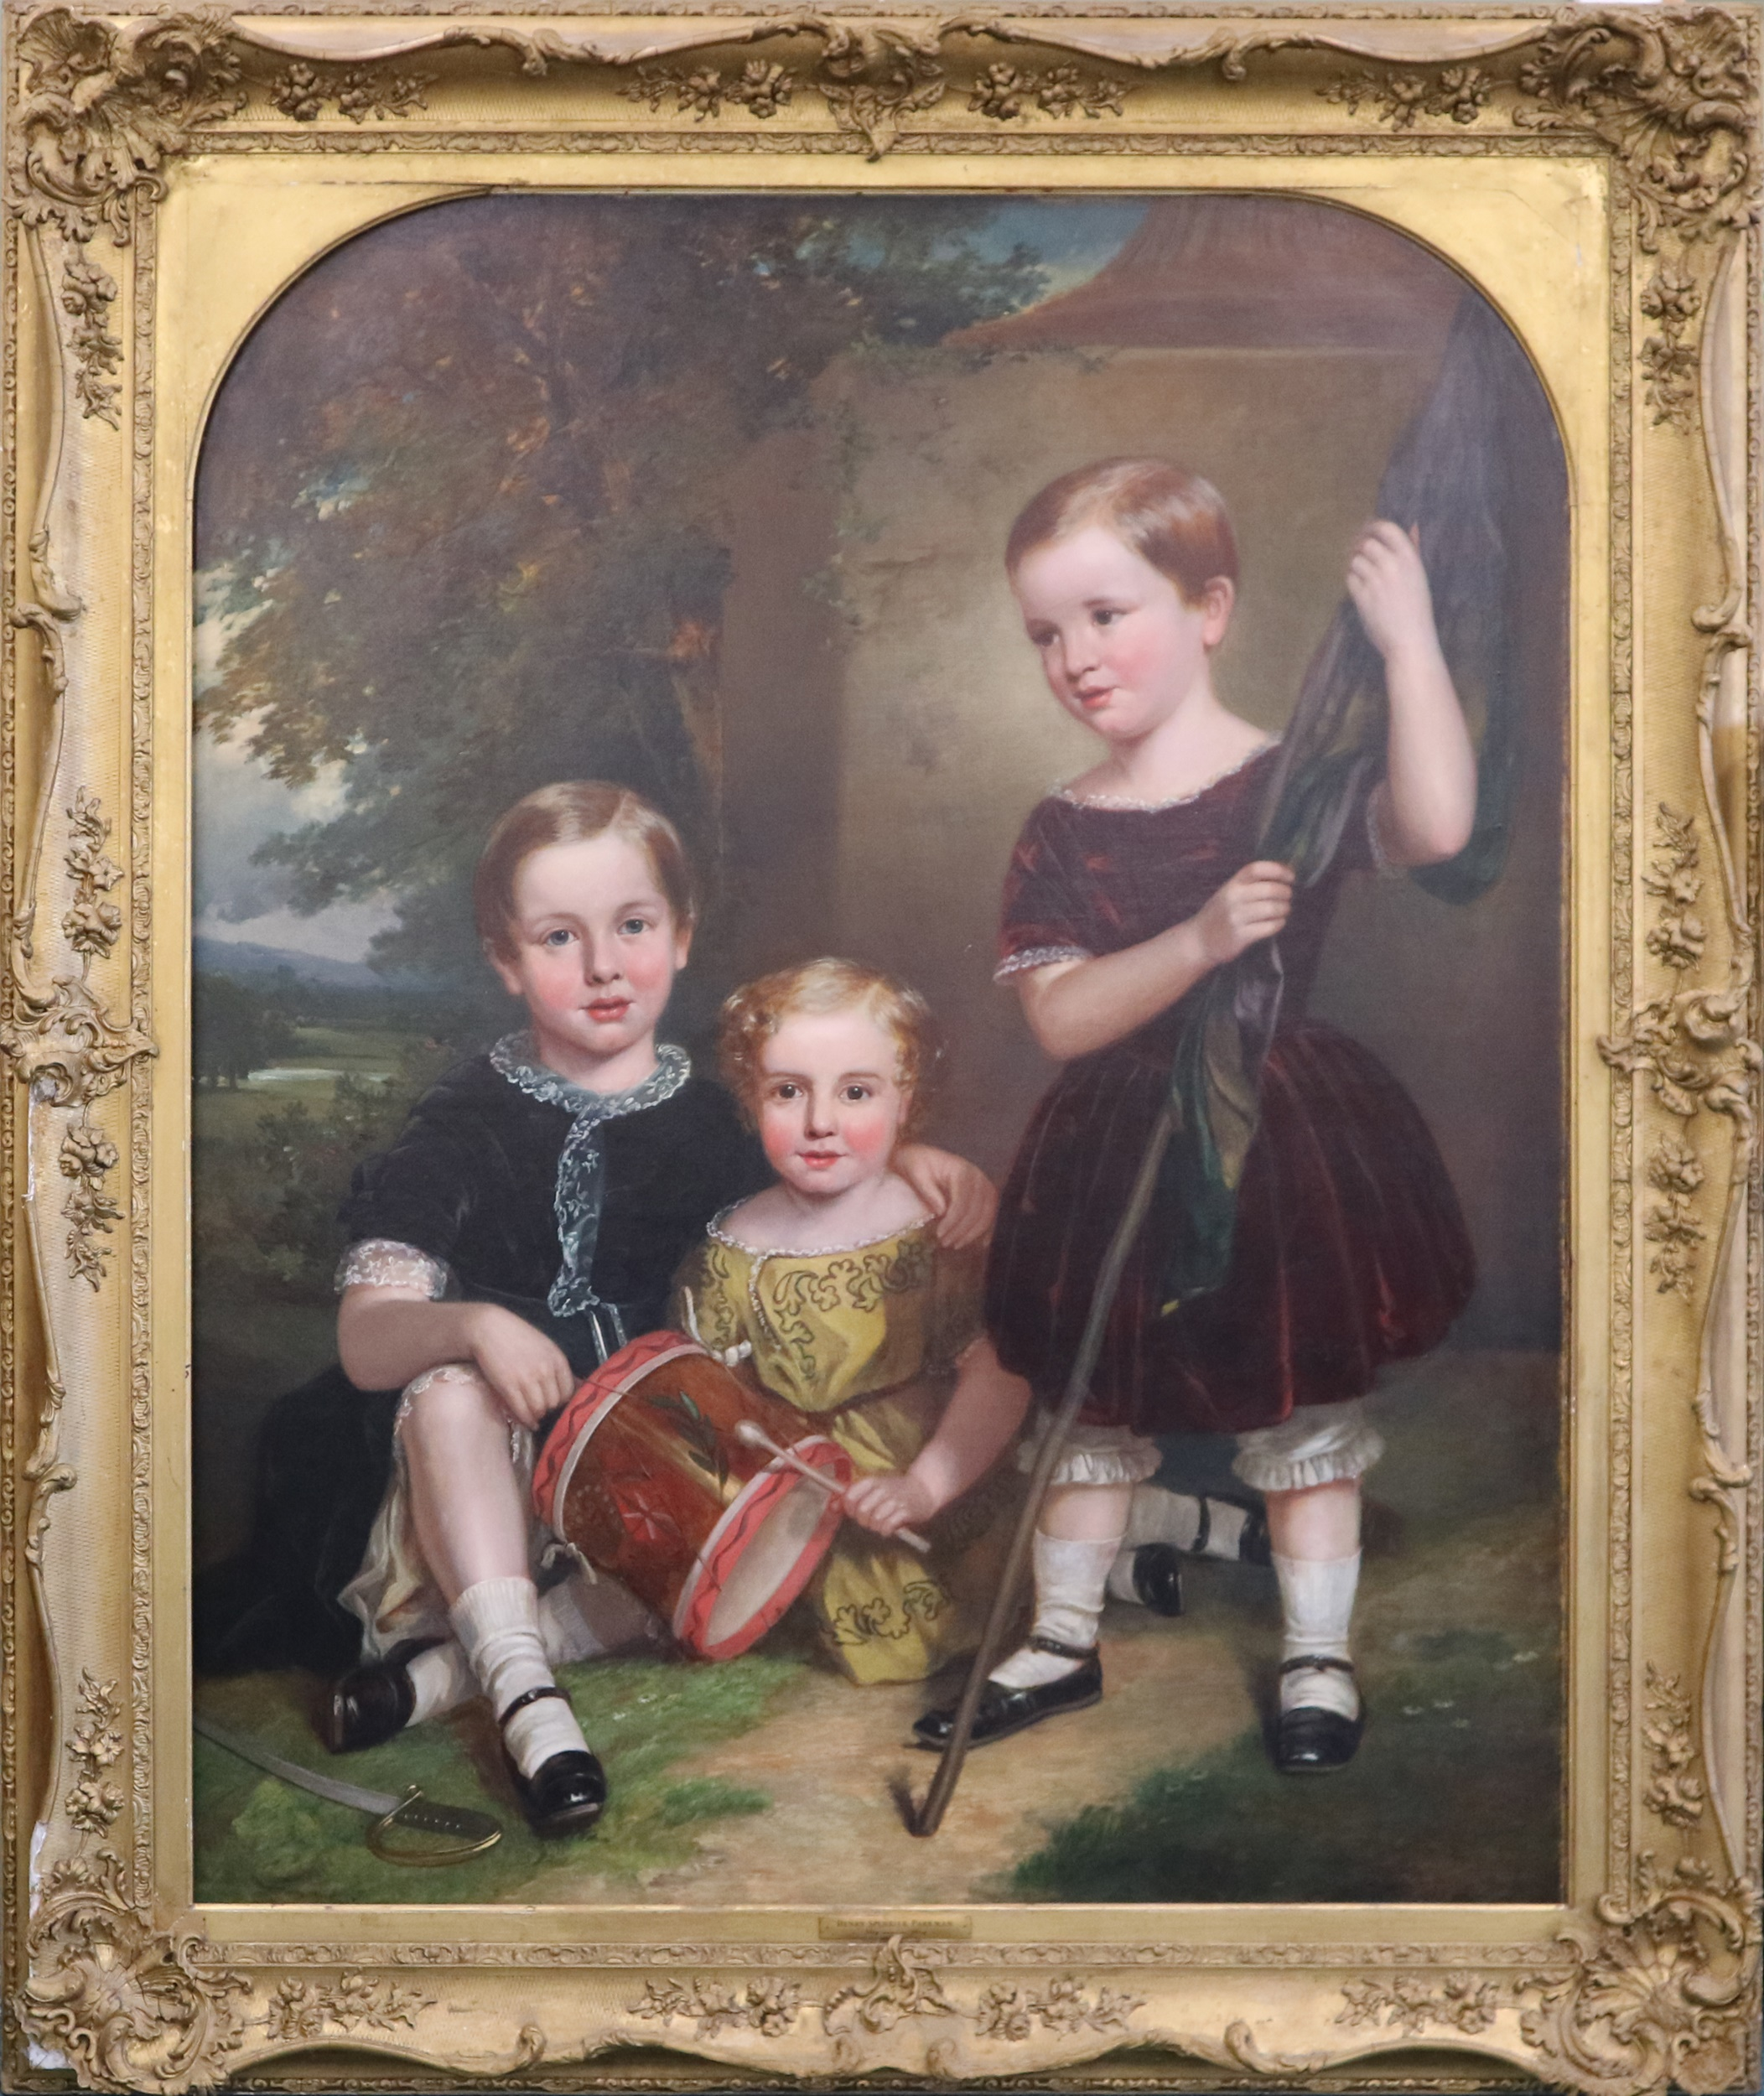 Firmstone children depicted in the family portrait shown attributed to Harry Spurrier Parkman framed